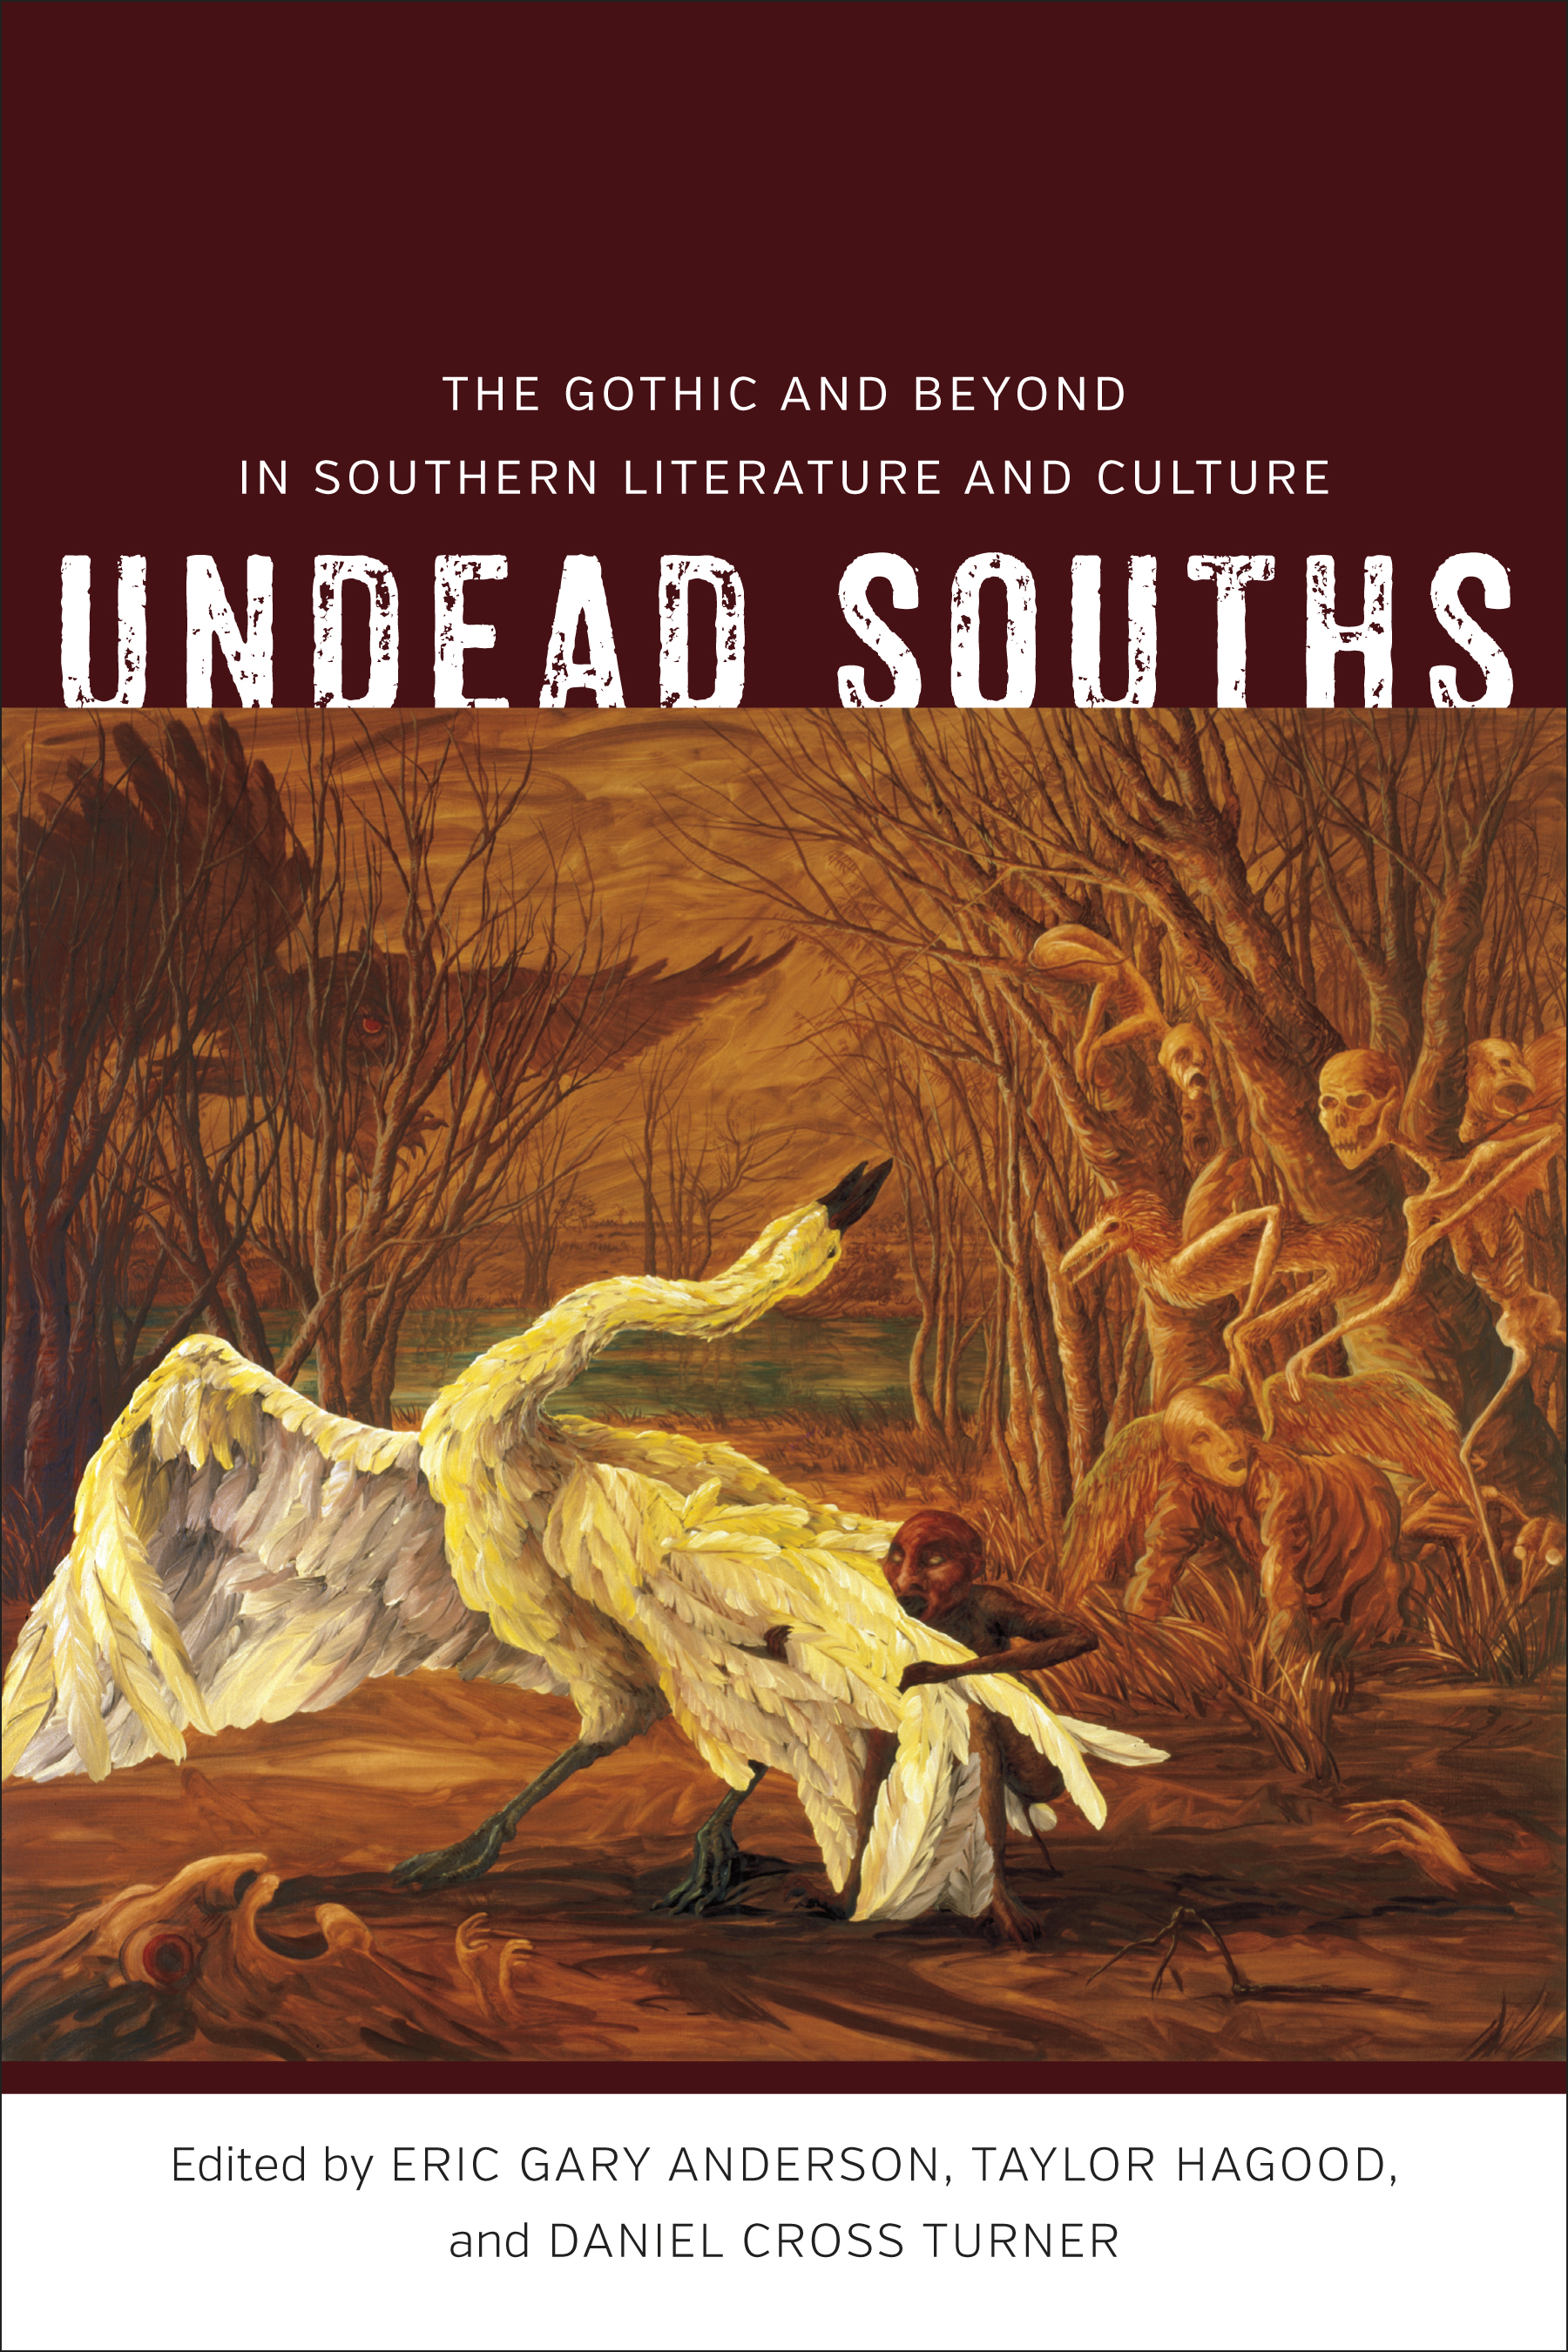 Undead Souths  from Louisiana State University Press.